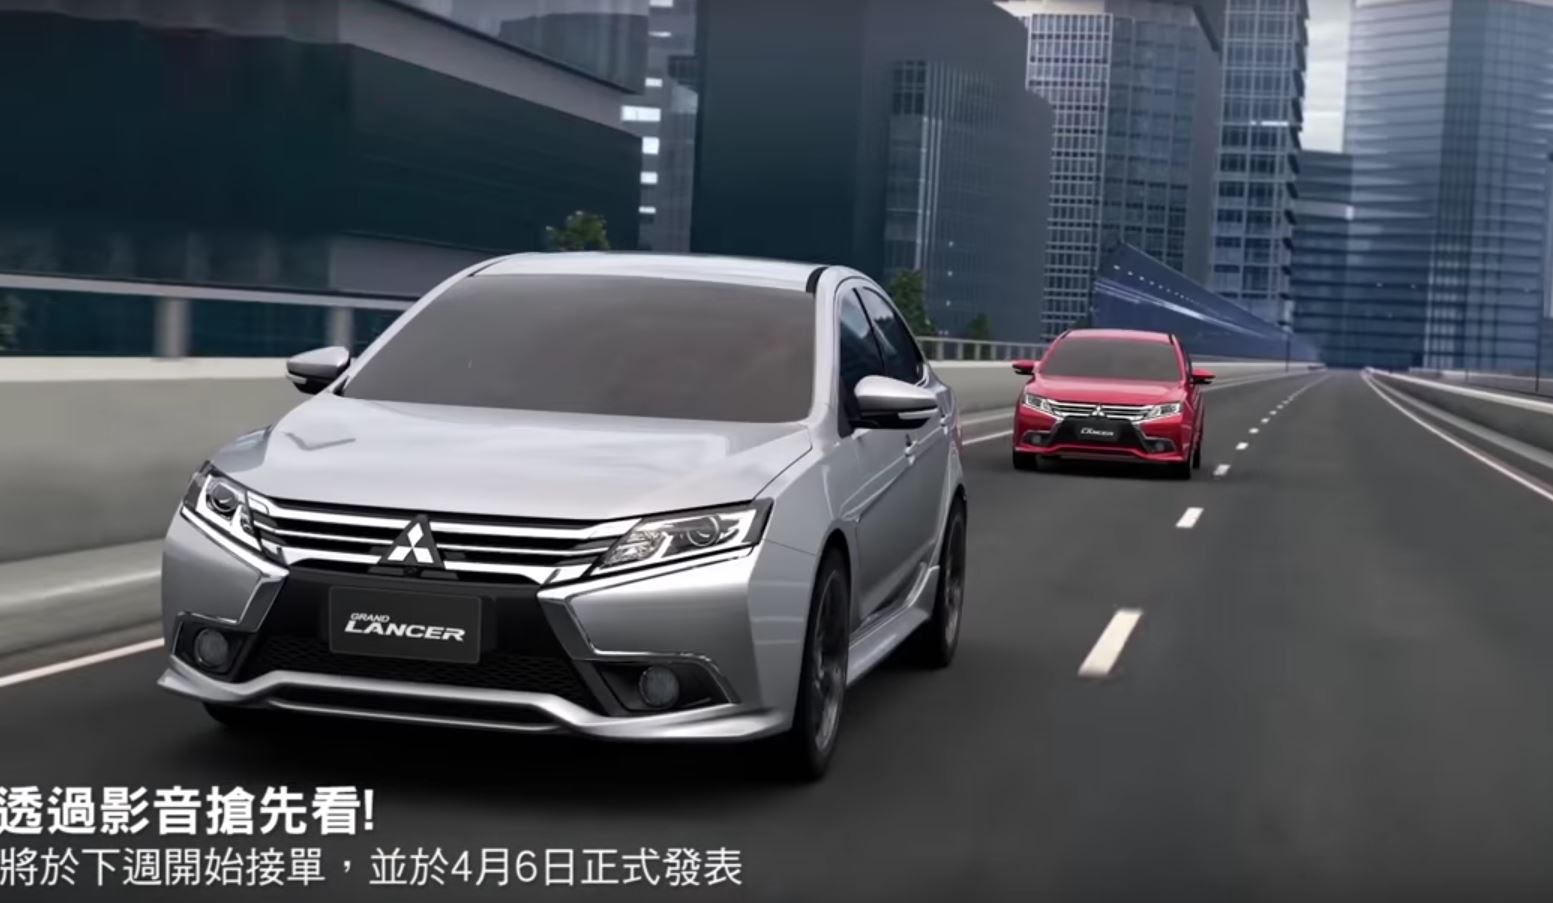 2017 Mitsubishi Grand Lancer Launched in China and Taiwan - autoevolution